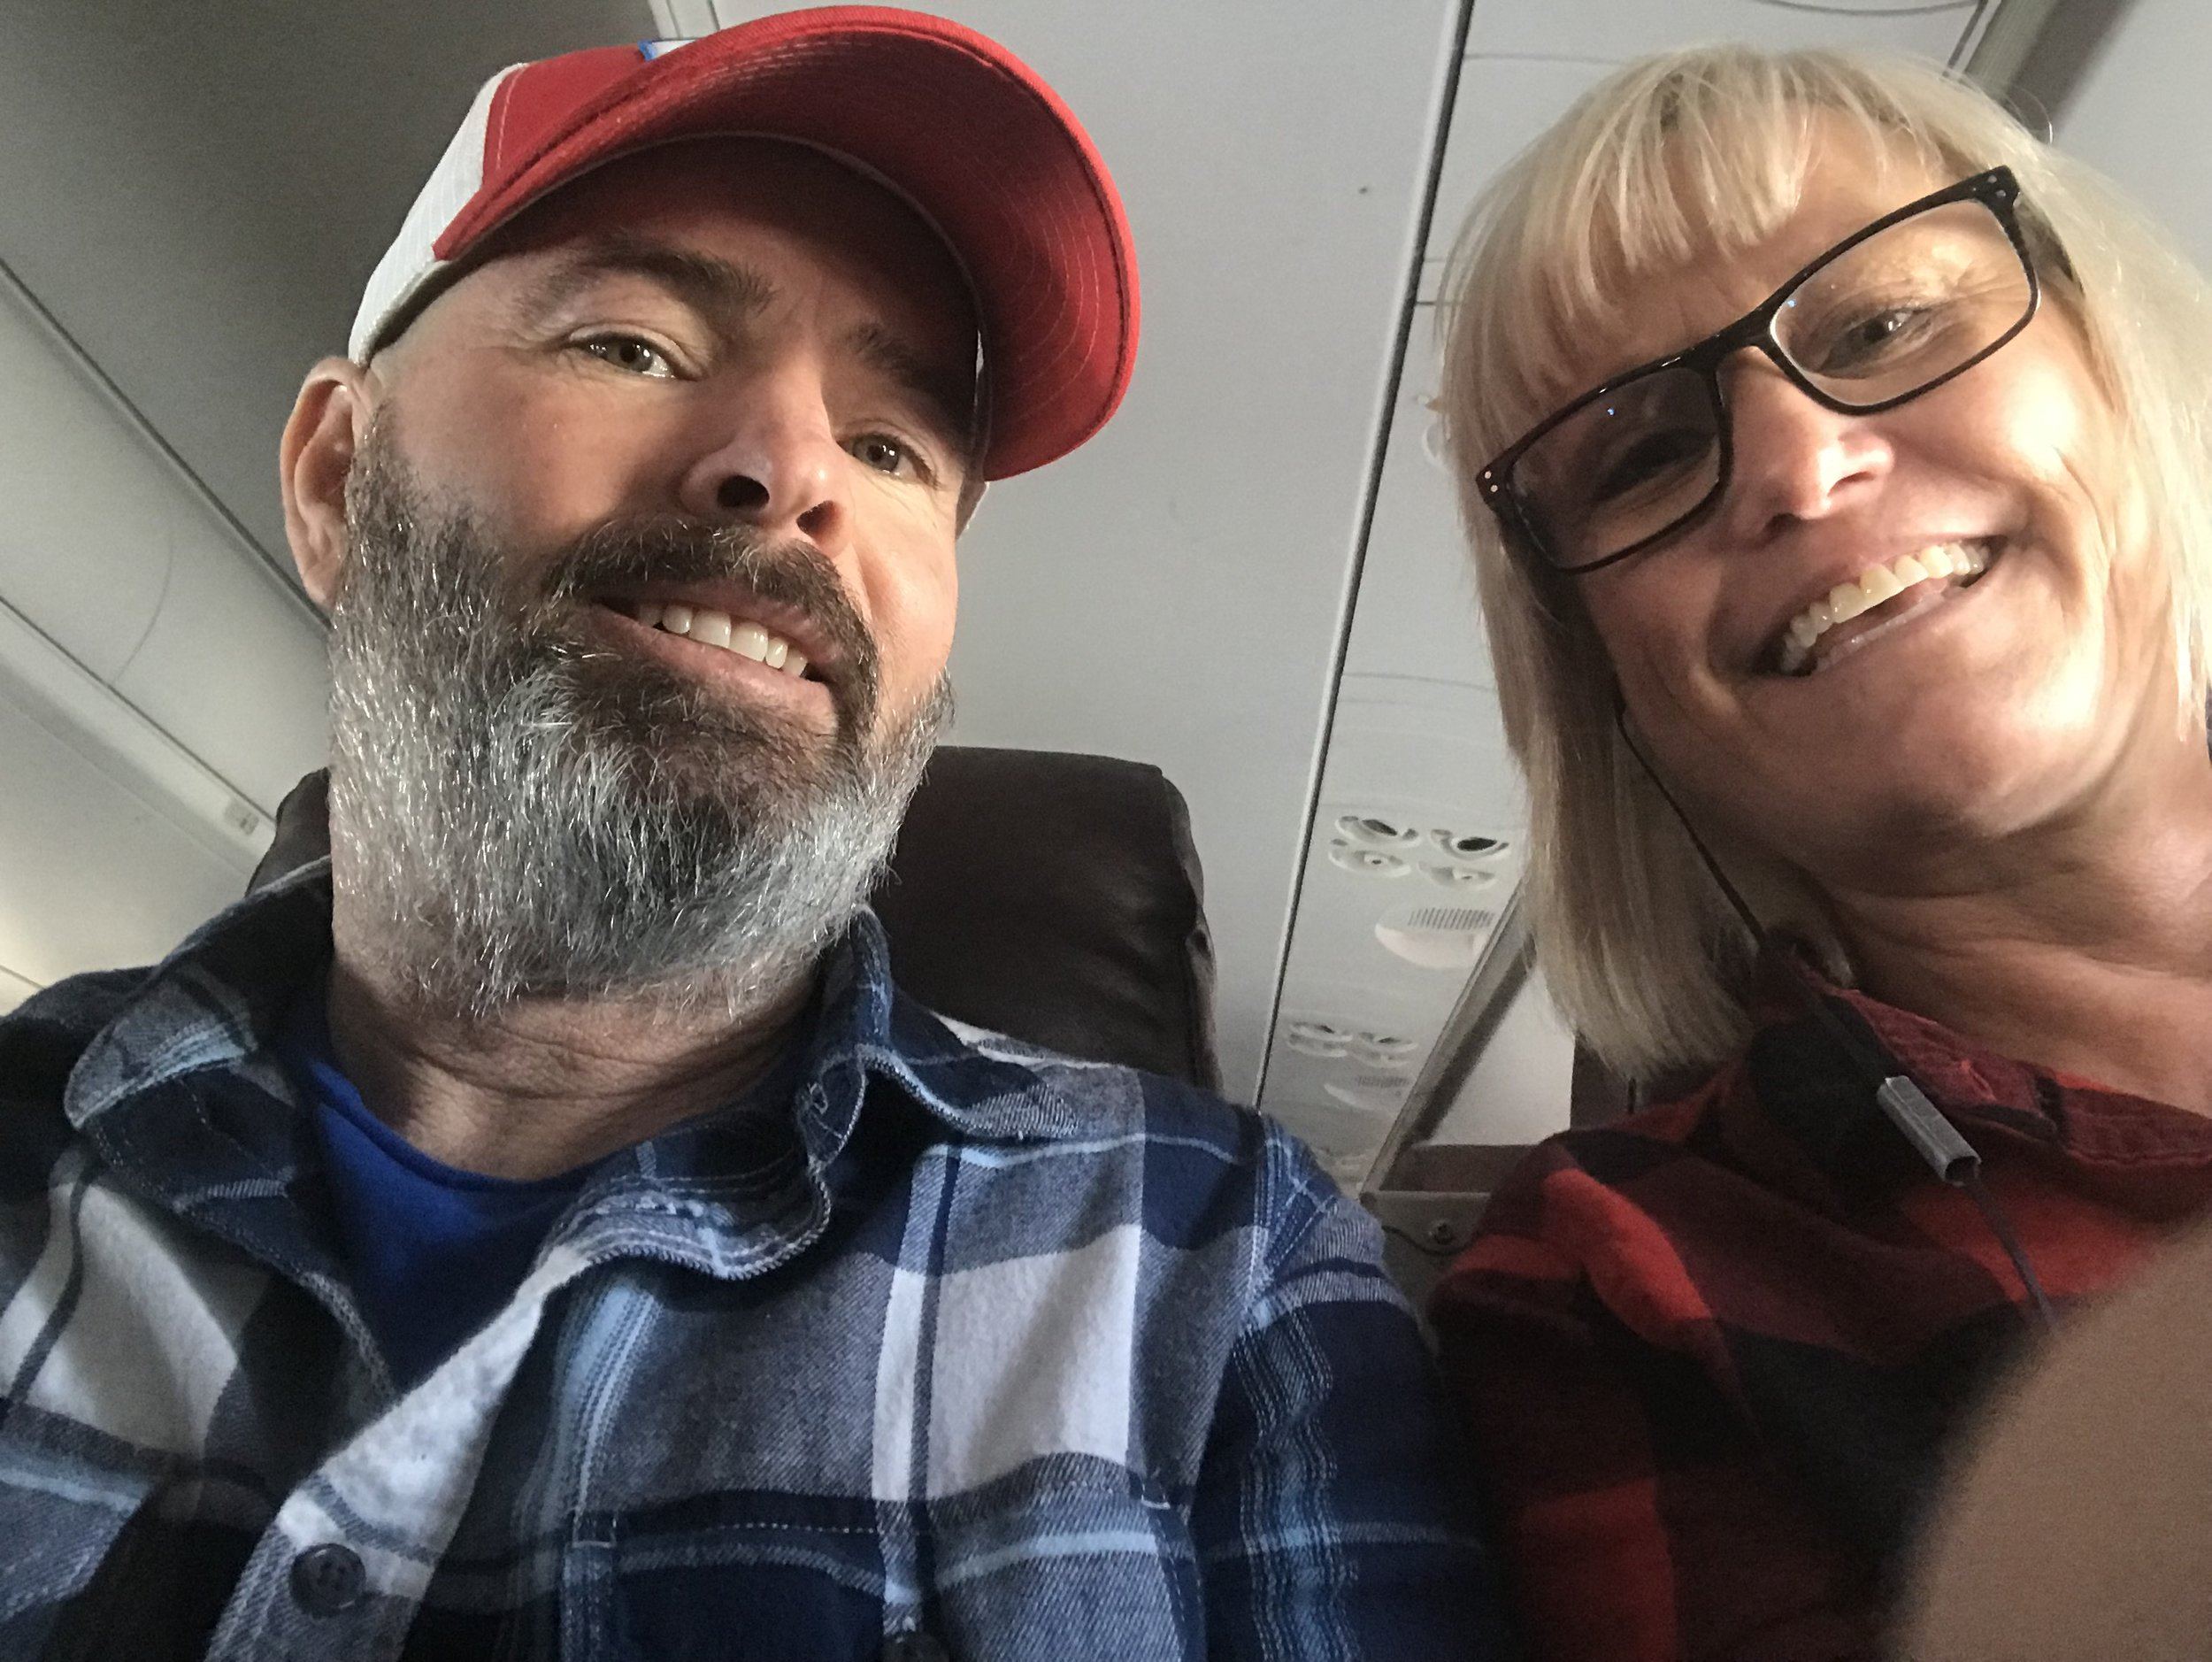 Paul traveling incognito with a beard. Hoping that HS would finally leave him alone while flying. The first leg of our long journey. And, yes that is duct tape on my earbuds. You can take the girl out of the country…